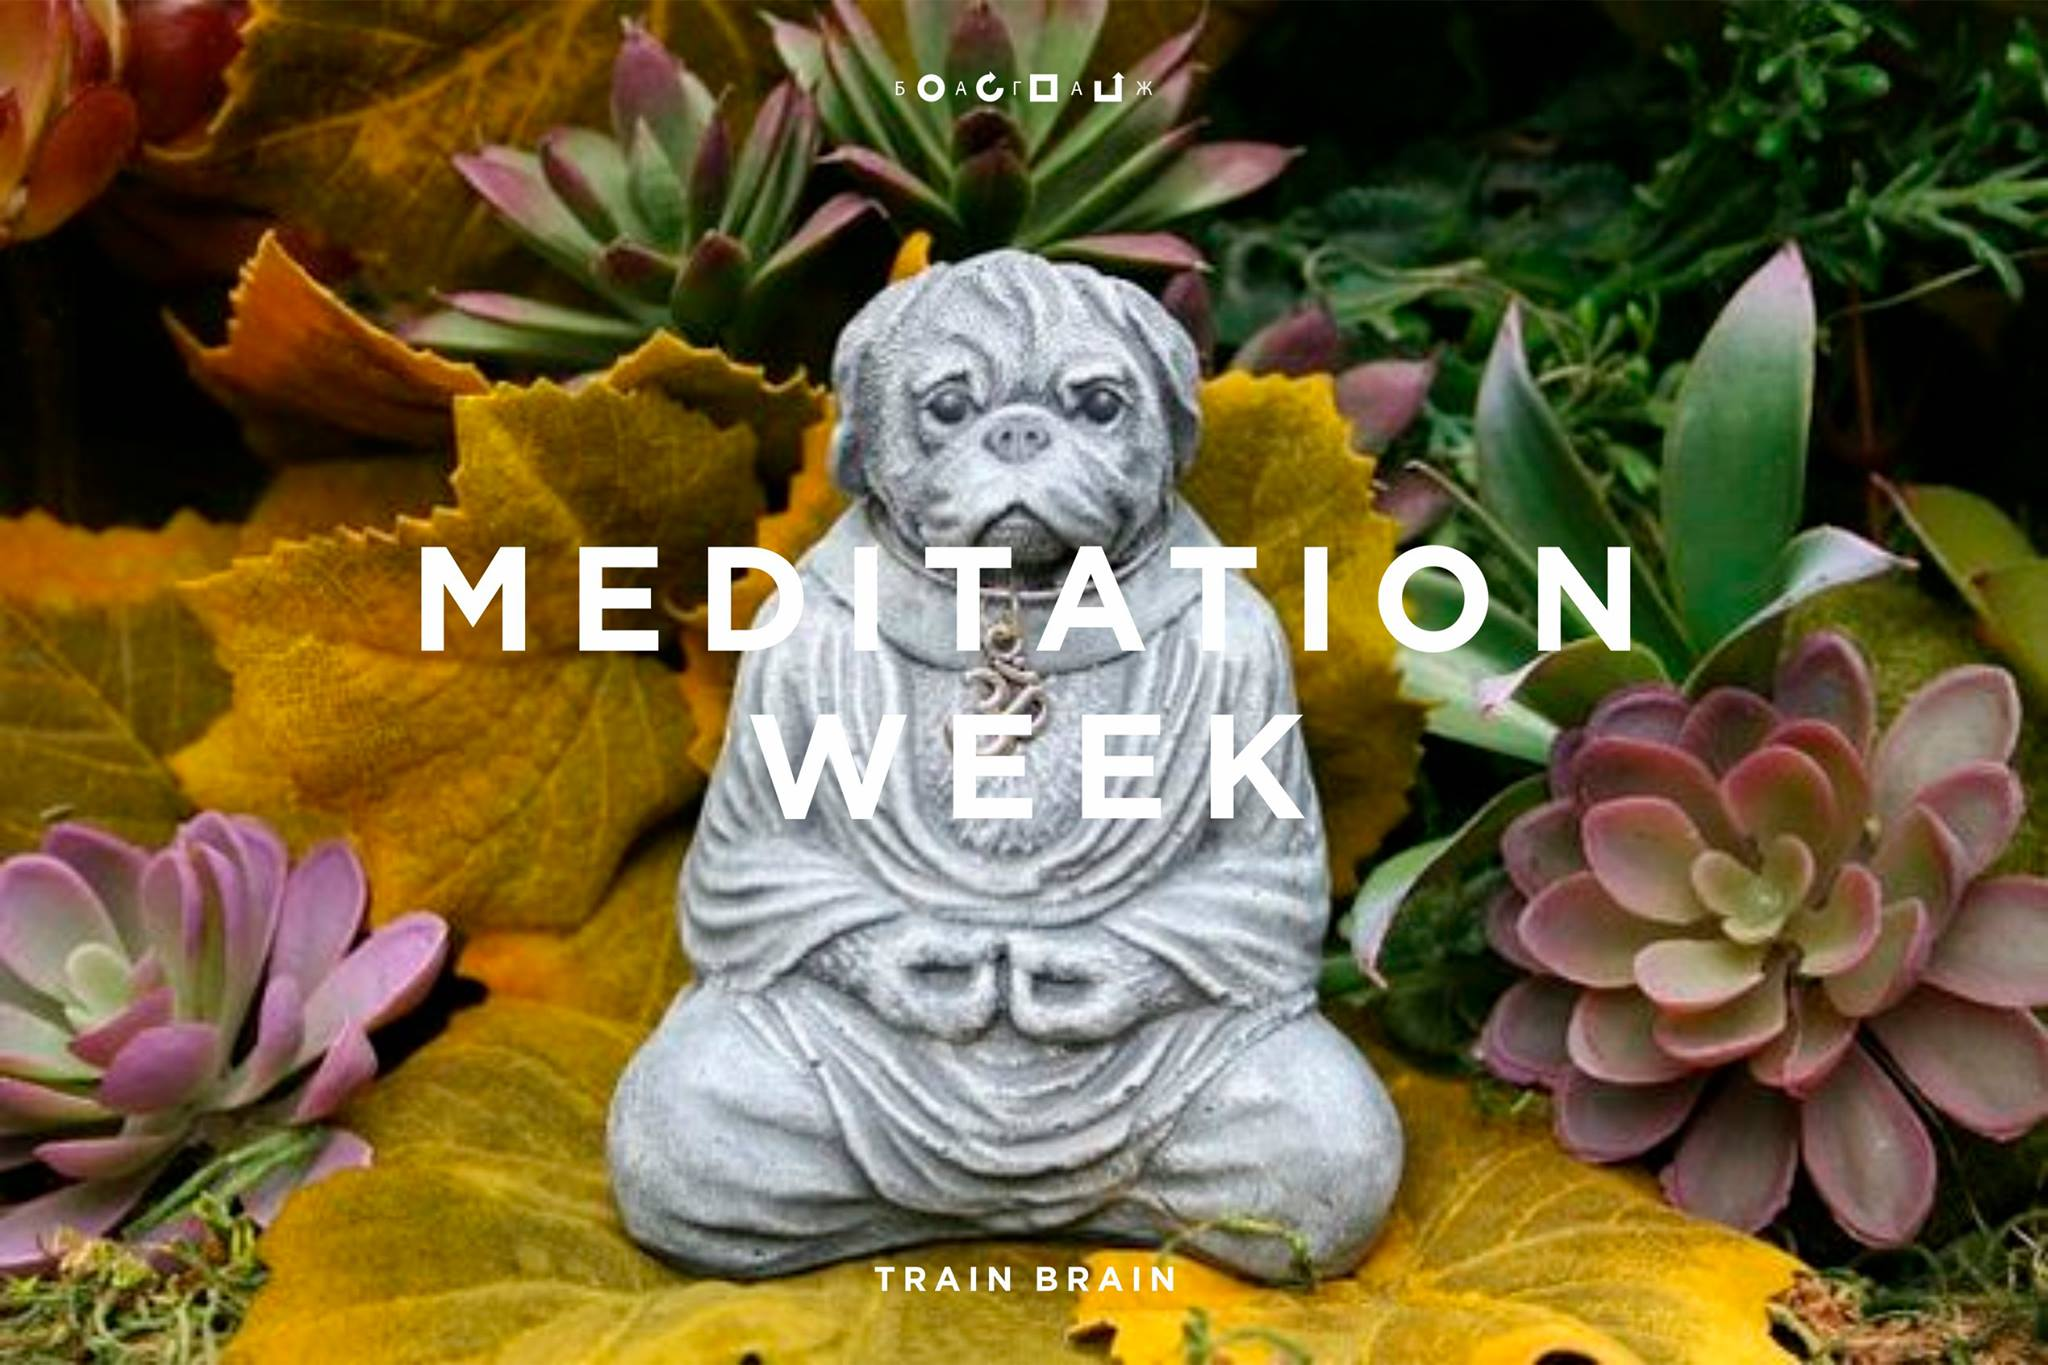 04_july_2016_MEDITATION WEEK